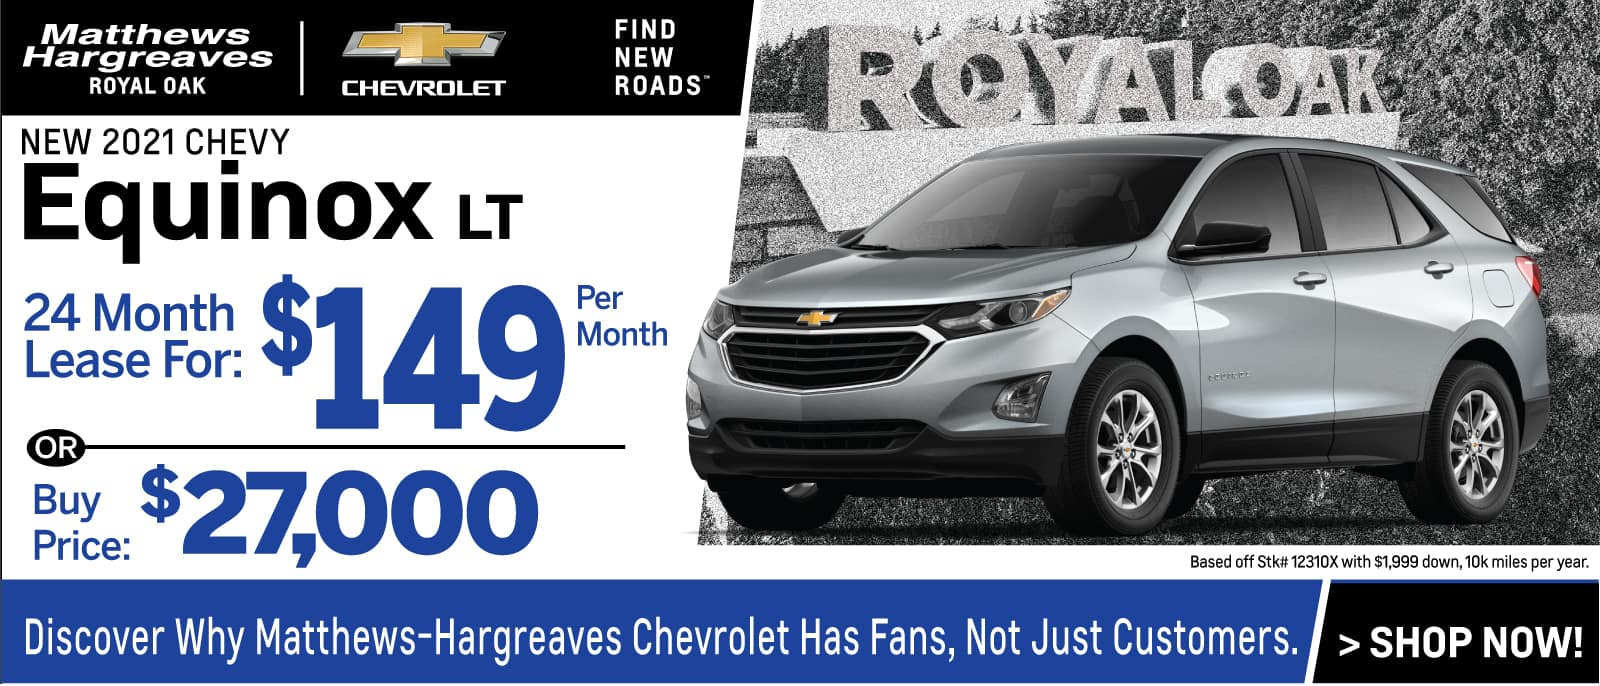 Matthews Hargreaves Chevrolet Royal Oak Mi New Used Cars